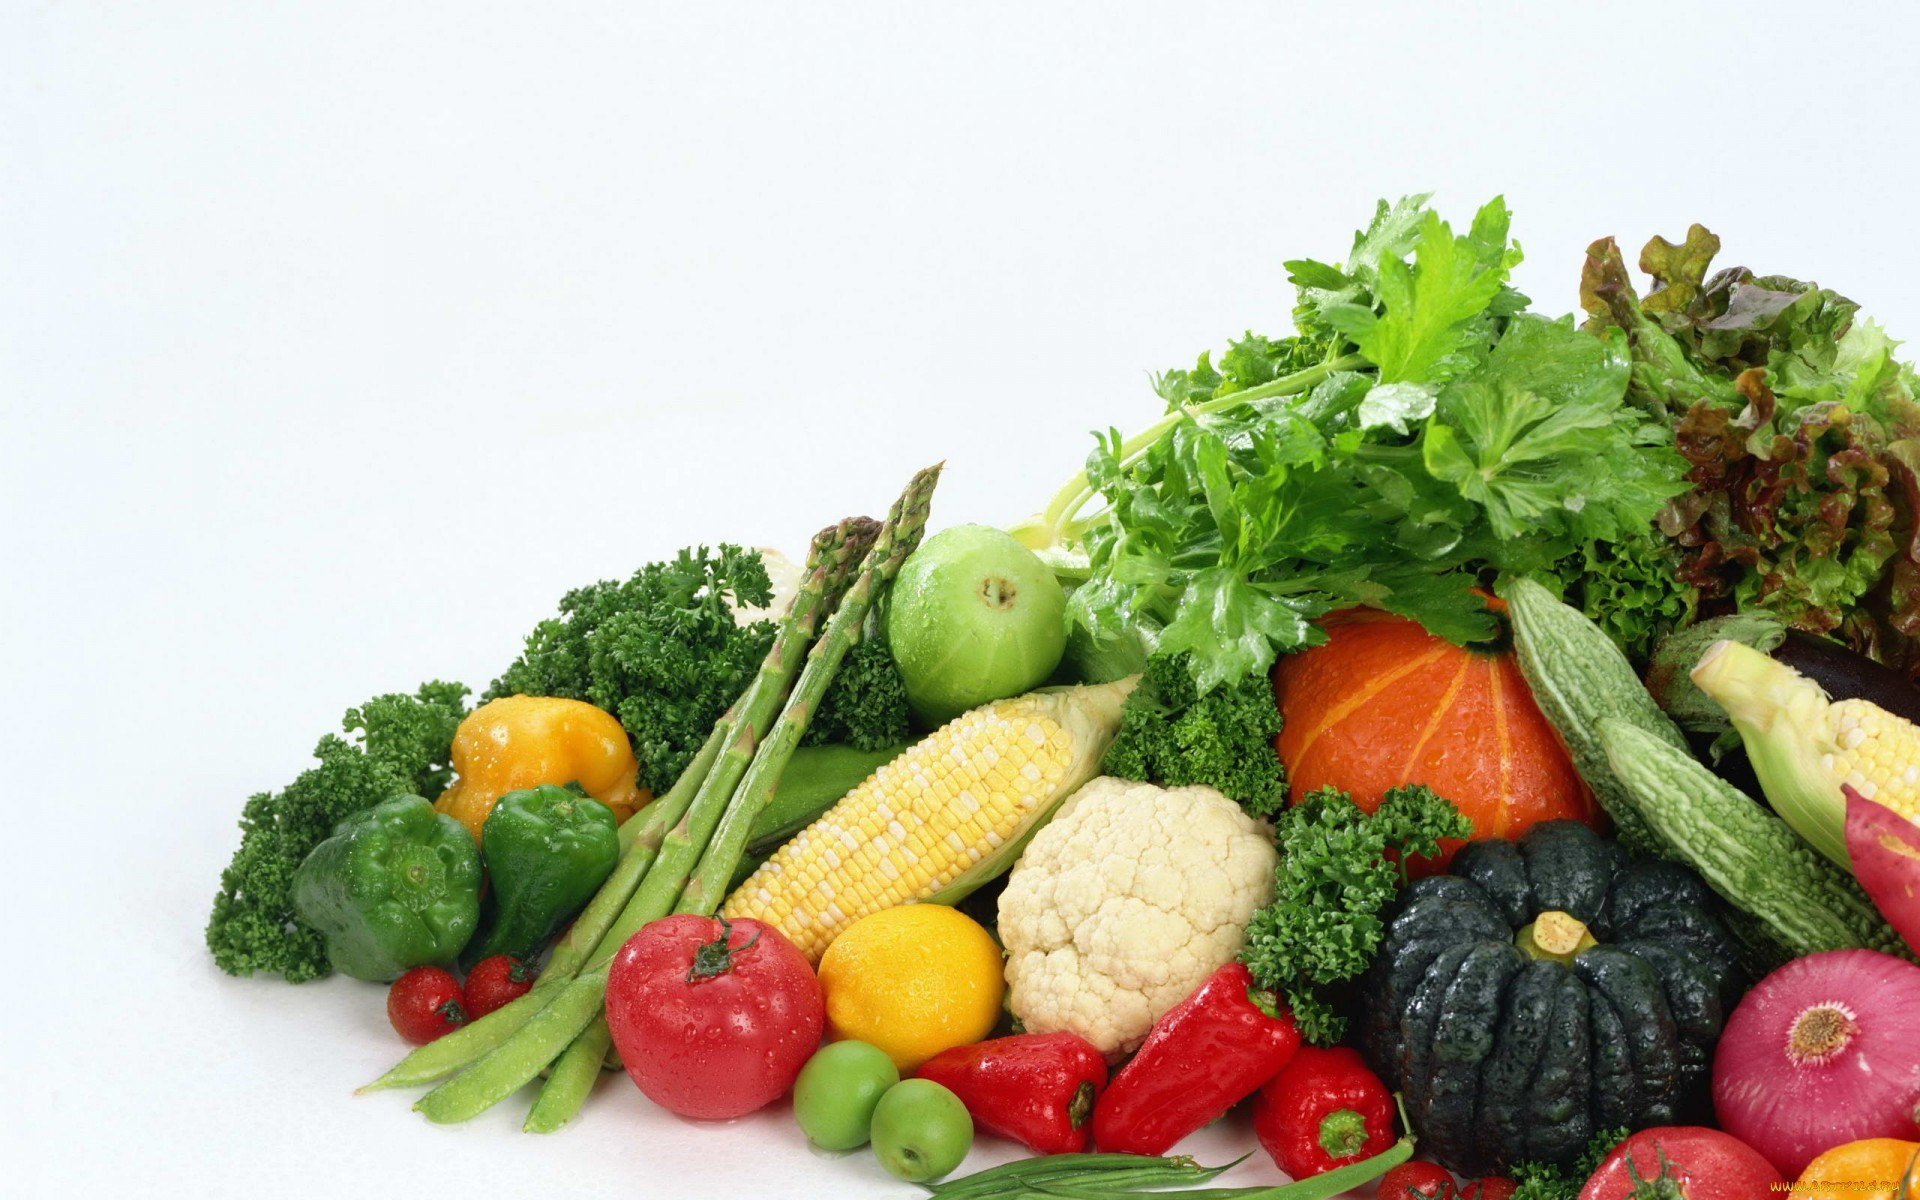 Res: 1920x1200, Vegetables Wallpapers 11 - 1920 X 1200